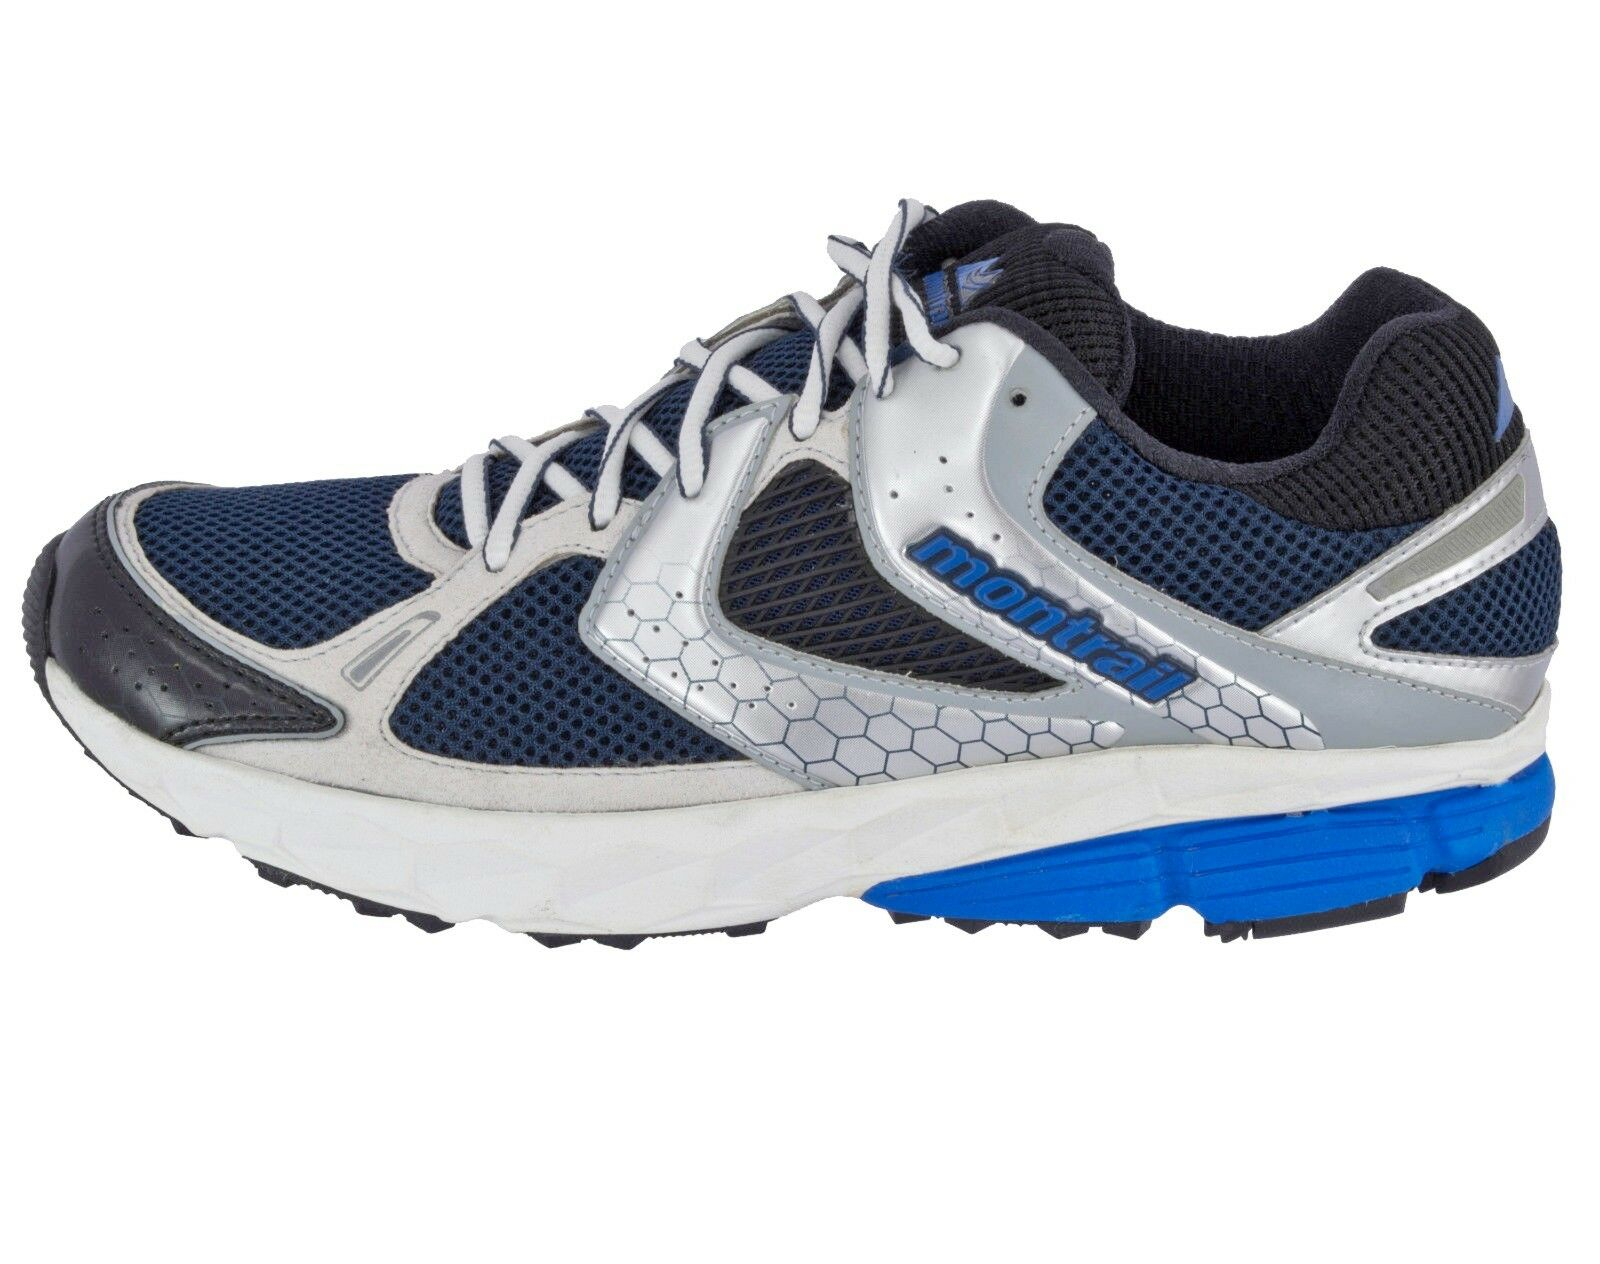 MONTRAIL MENS NEW D GM2122 FAIRHAVEN TRAIL RUNNING HIKING SHOE US 9